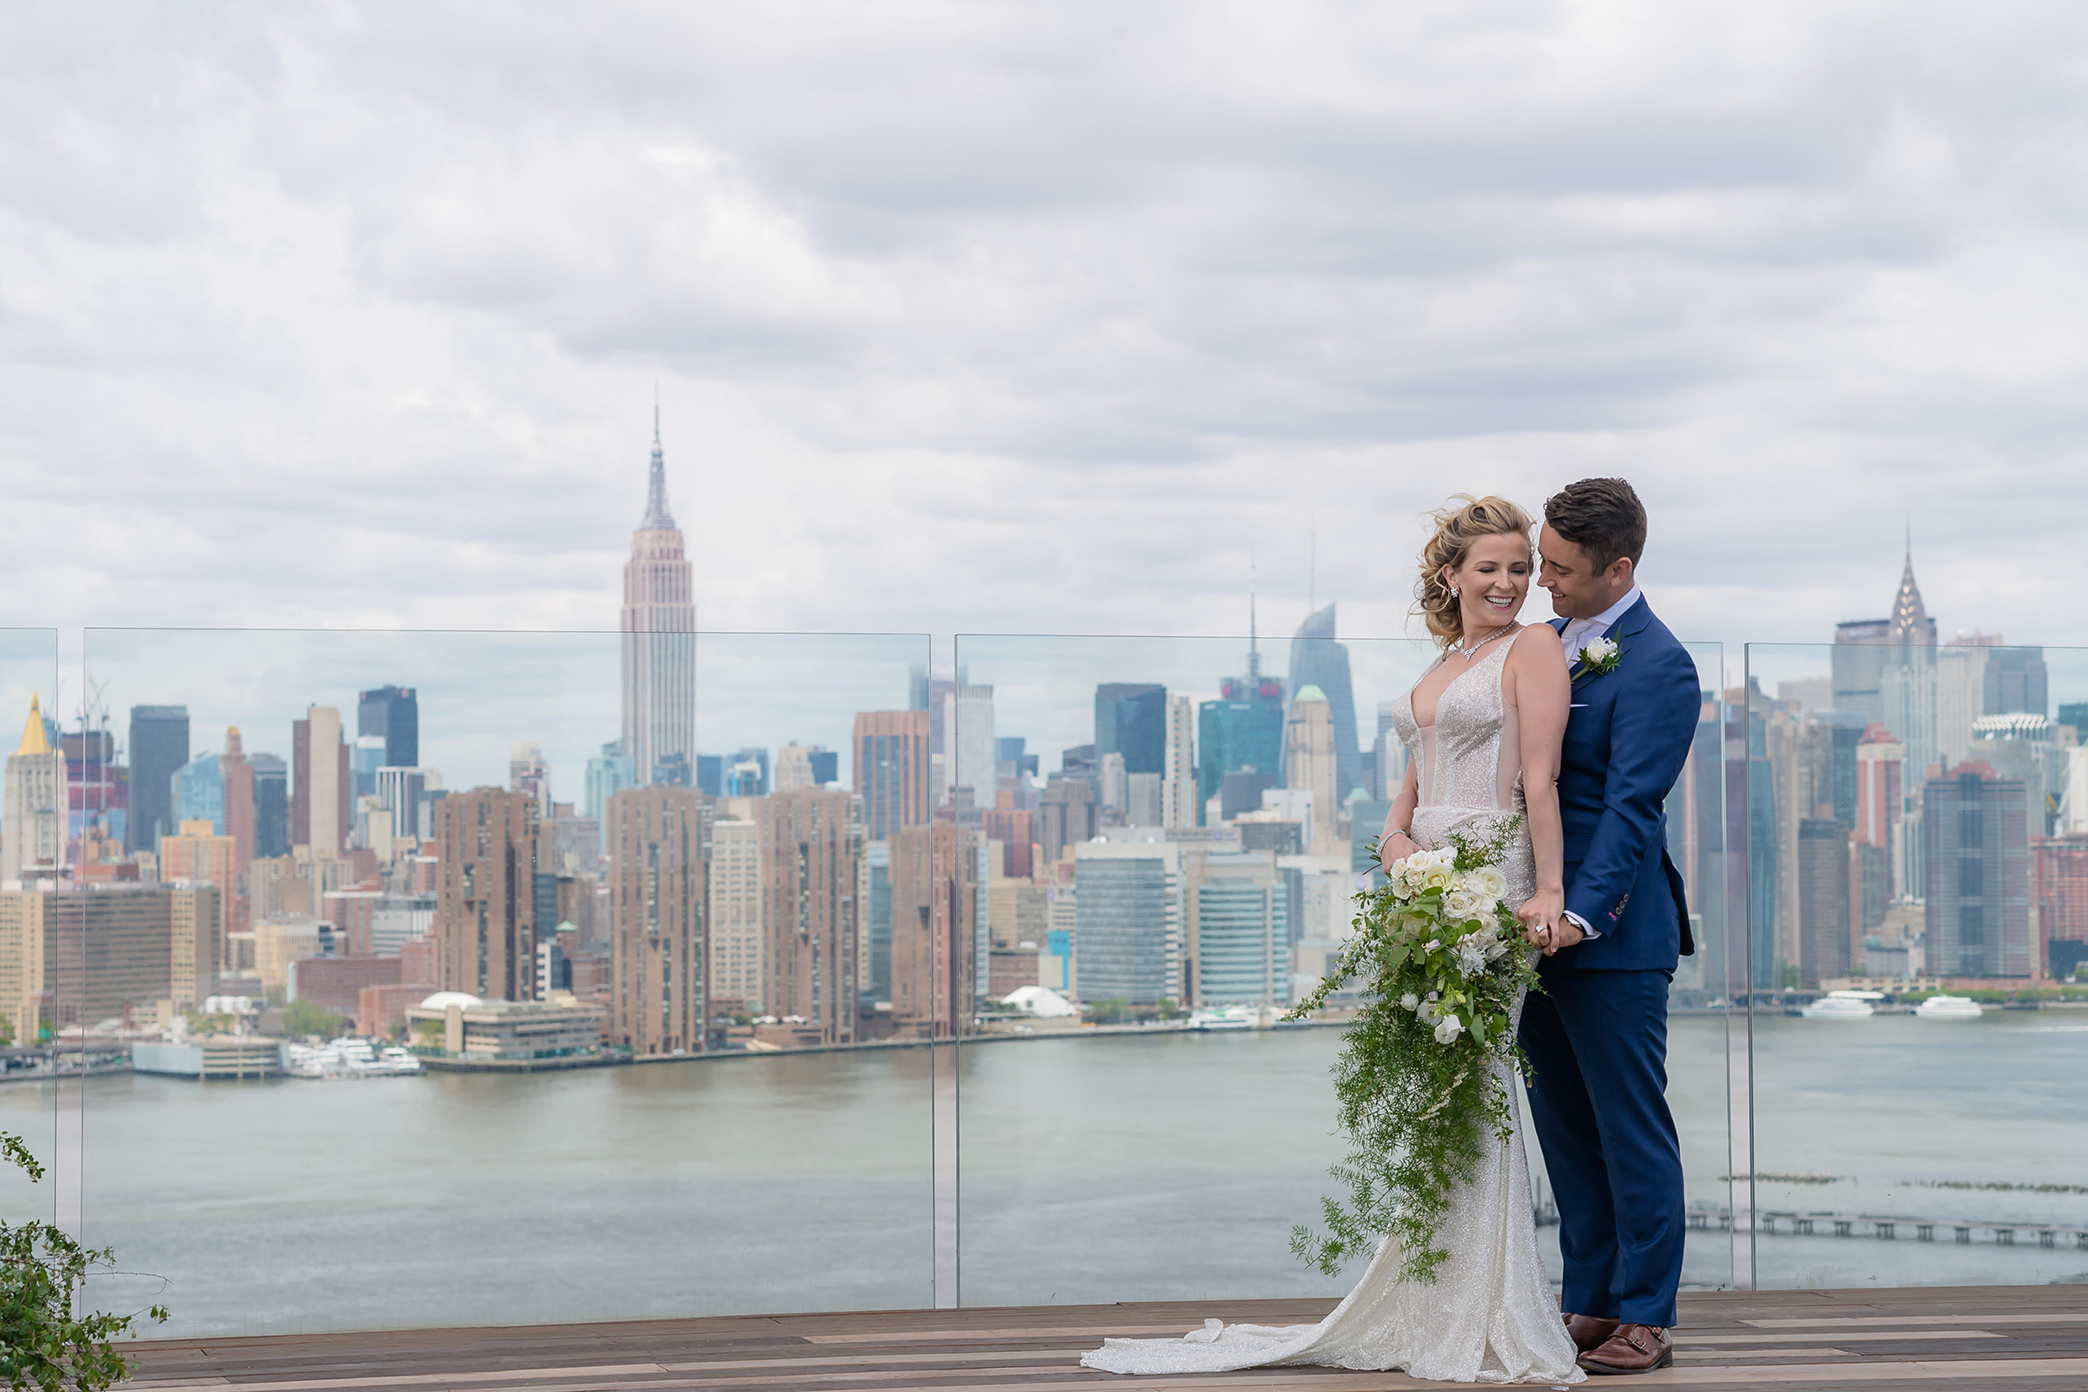 Why You Should Have Your Wedding at William Vale